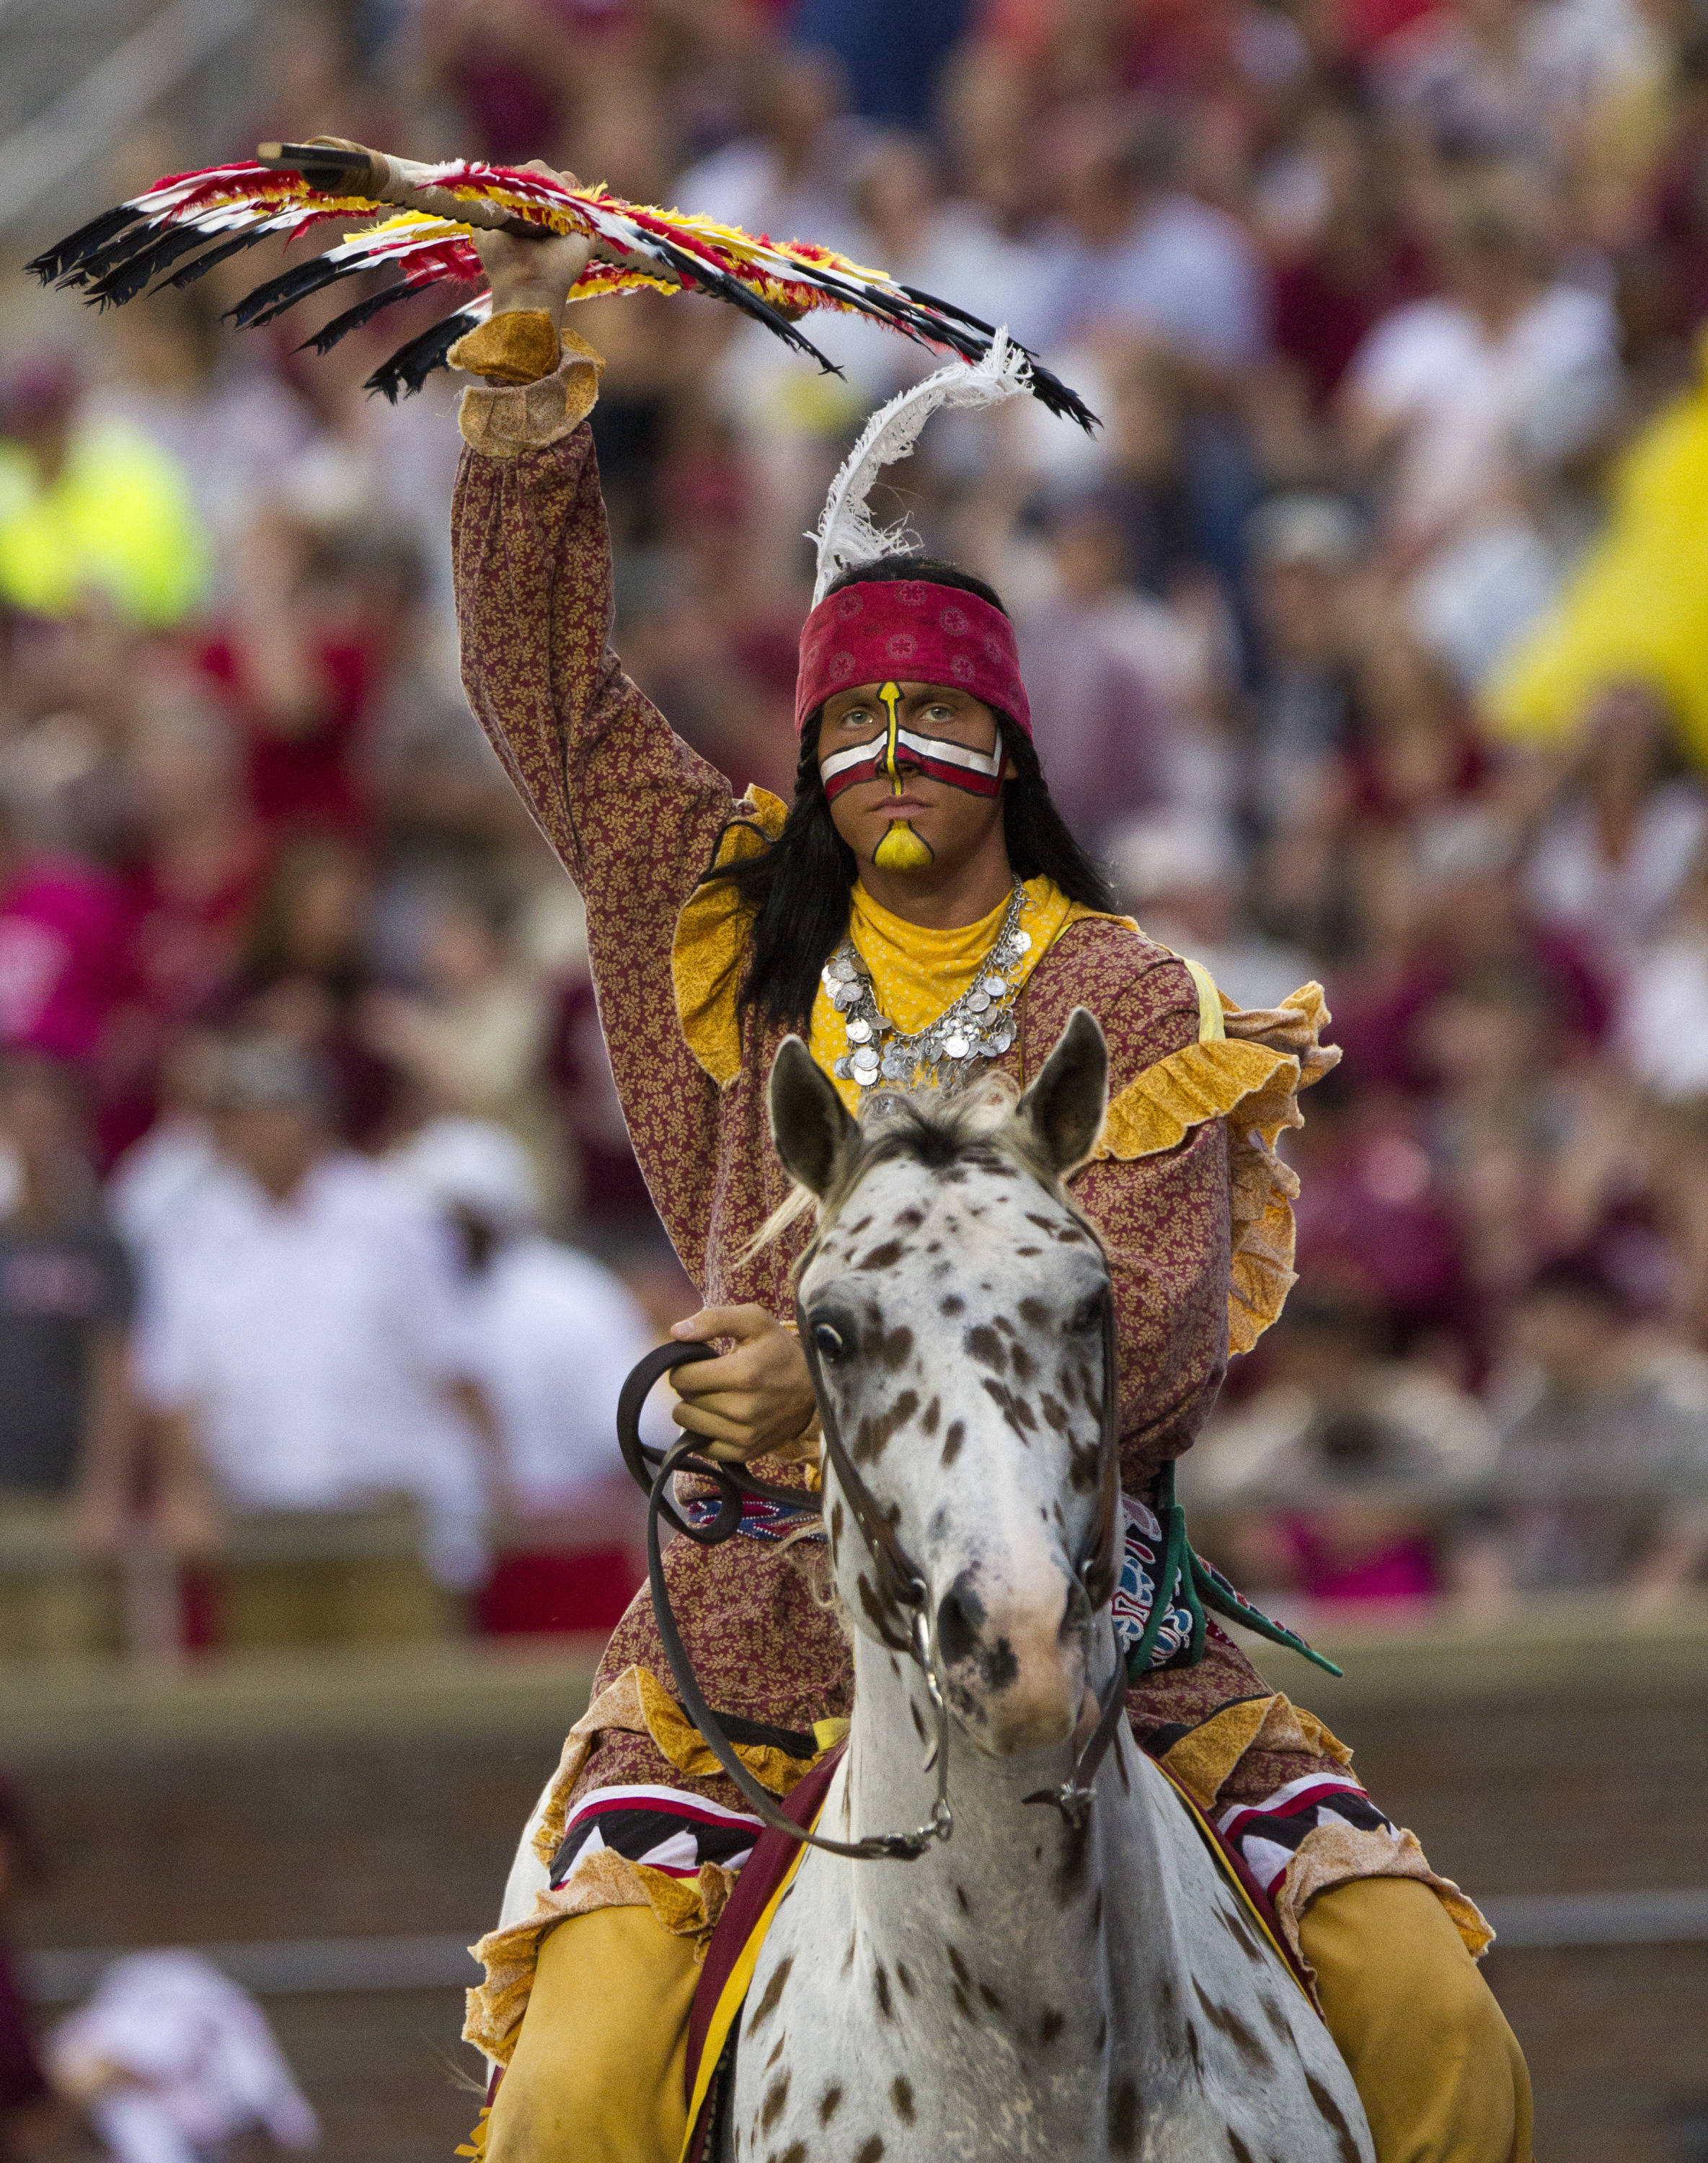 Chief Osceola celebrates during FSU Football's 54-6 win over Bethune-Cookman on September 21, 2013 in Tallahassee, Fla